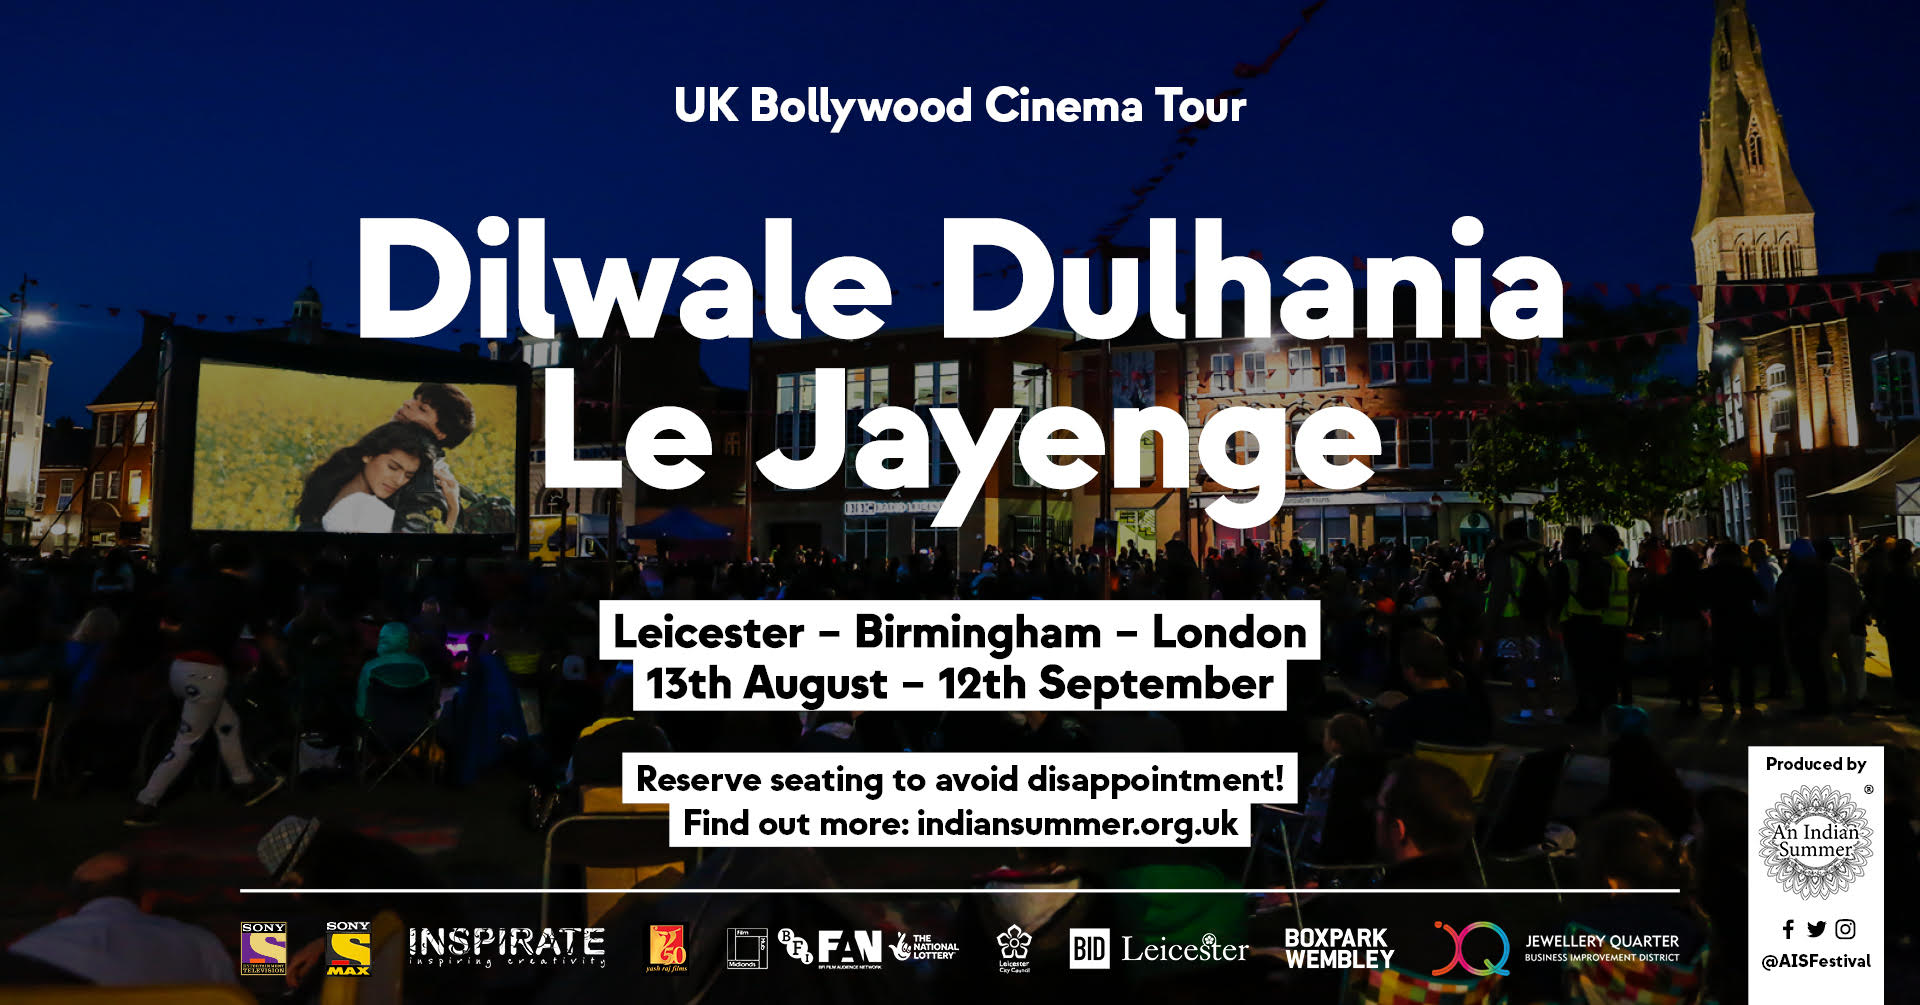 UK Bollywood Cinema Tour is coming to the Jewellery Quarter